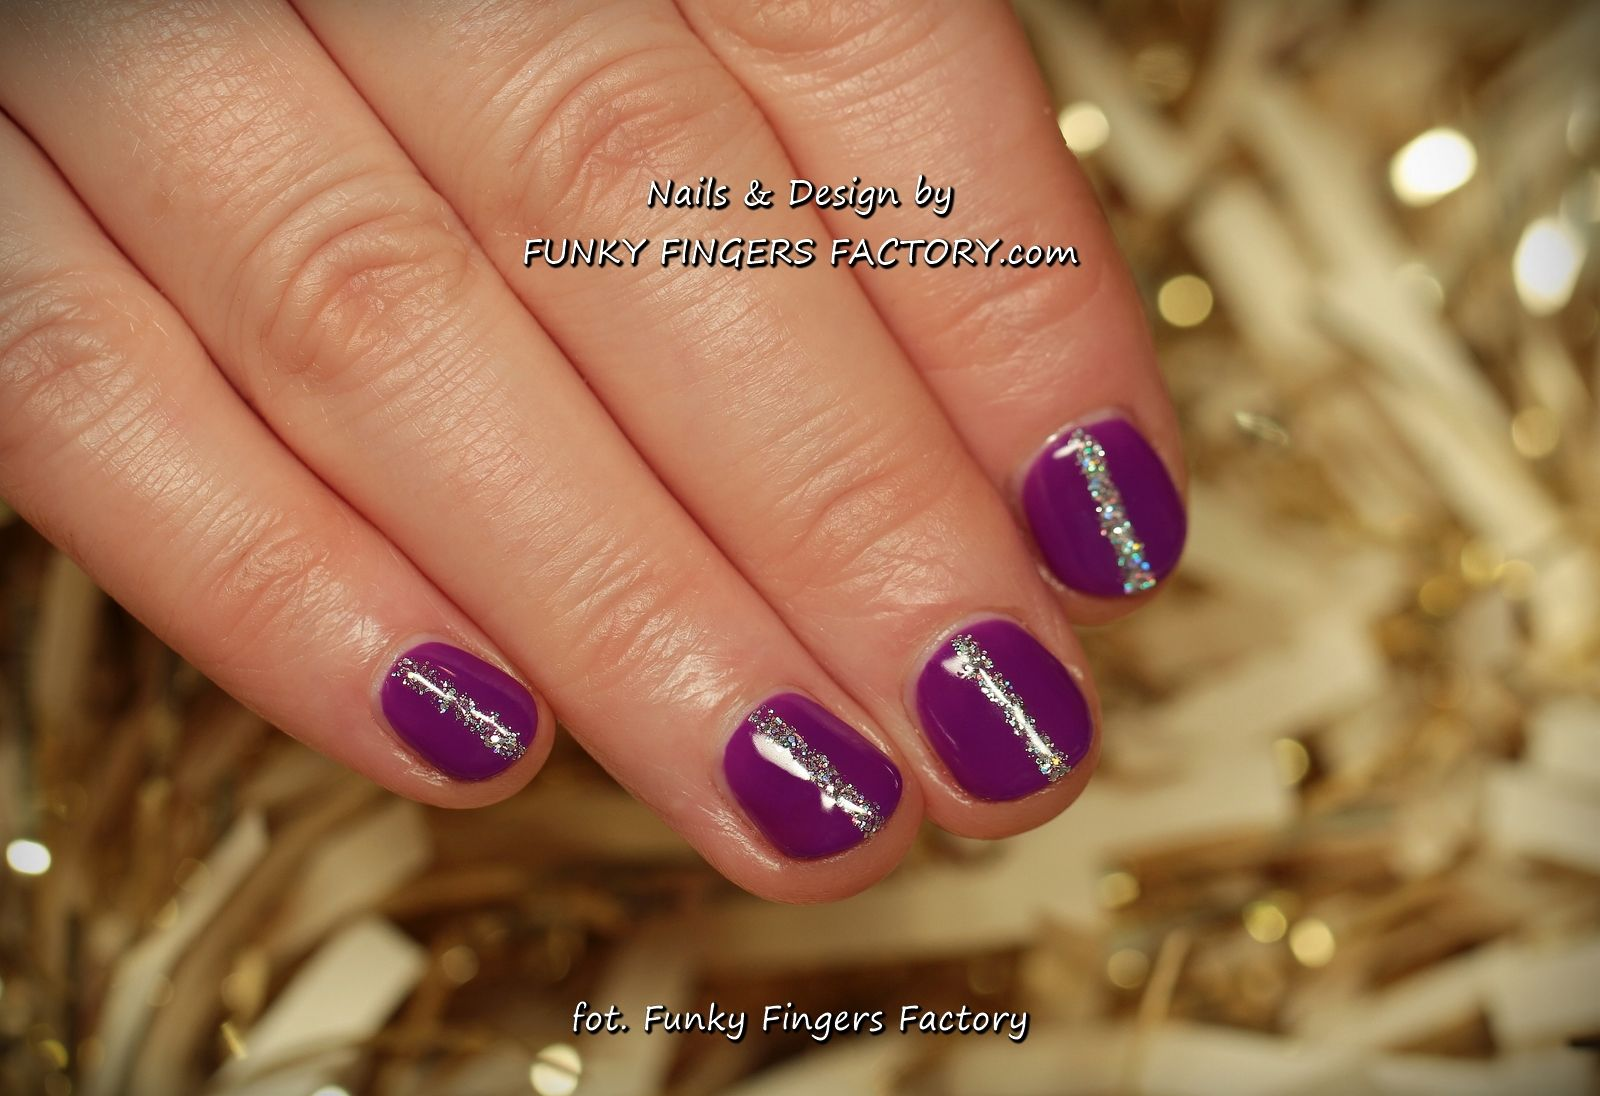 Purple Ans Silver Gelish New Years Manicure On Short Bitten Nails By